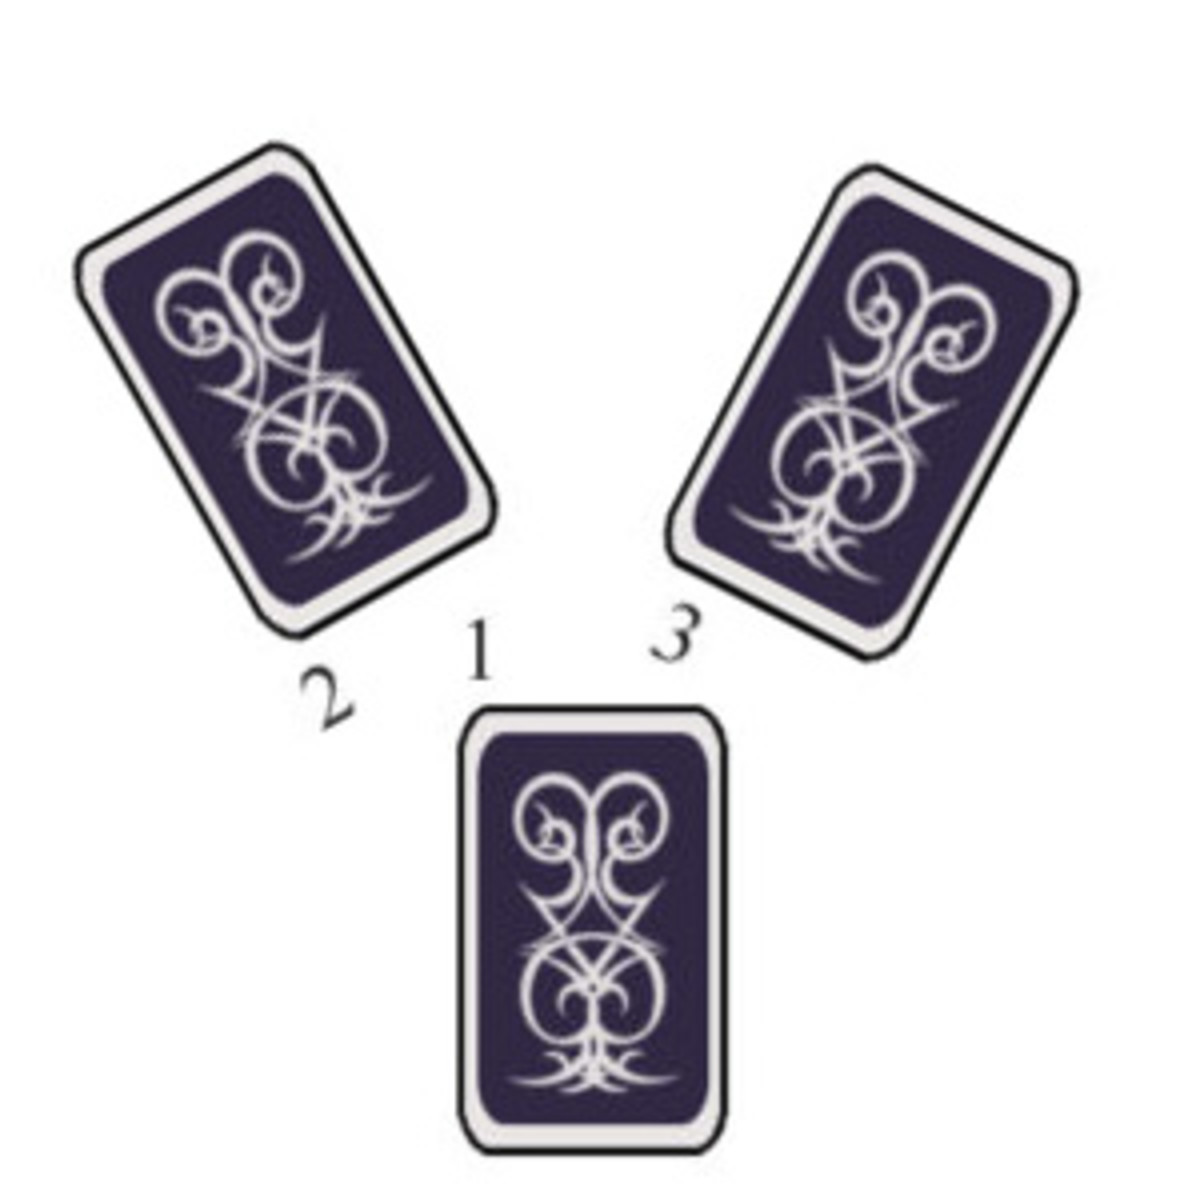 Two Roads Spread: Card one on the bottom starts it, then look at the two possible paths.